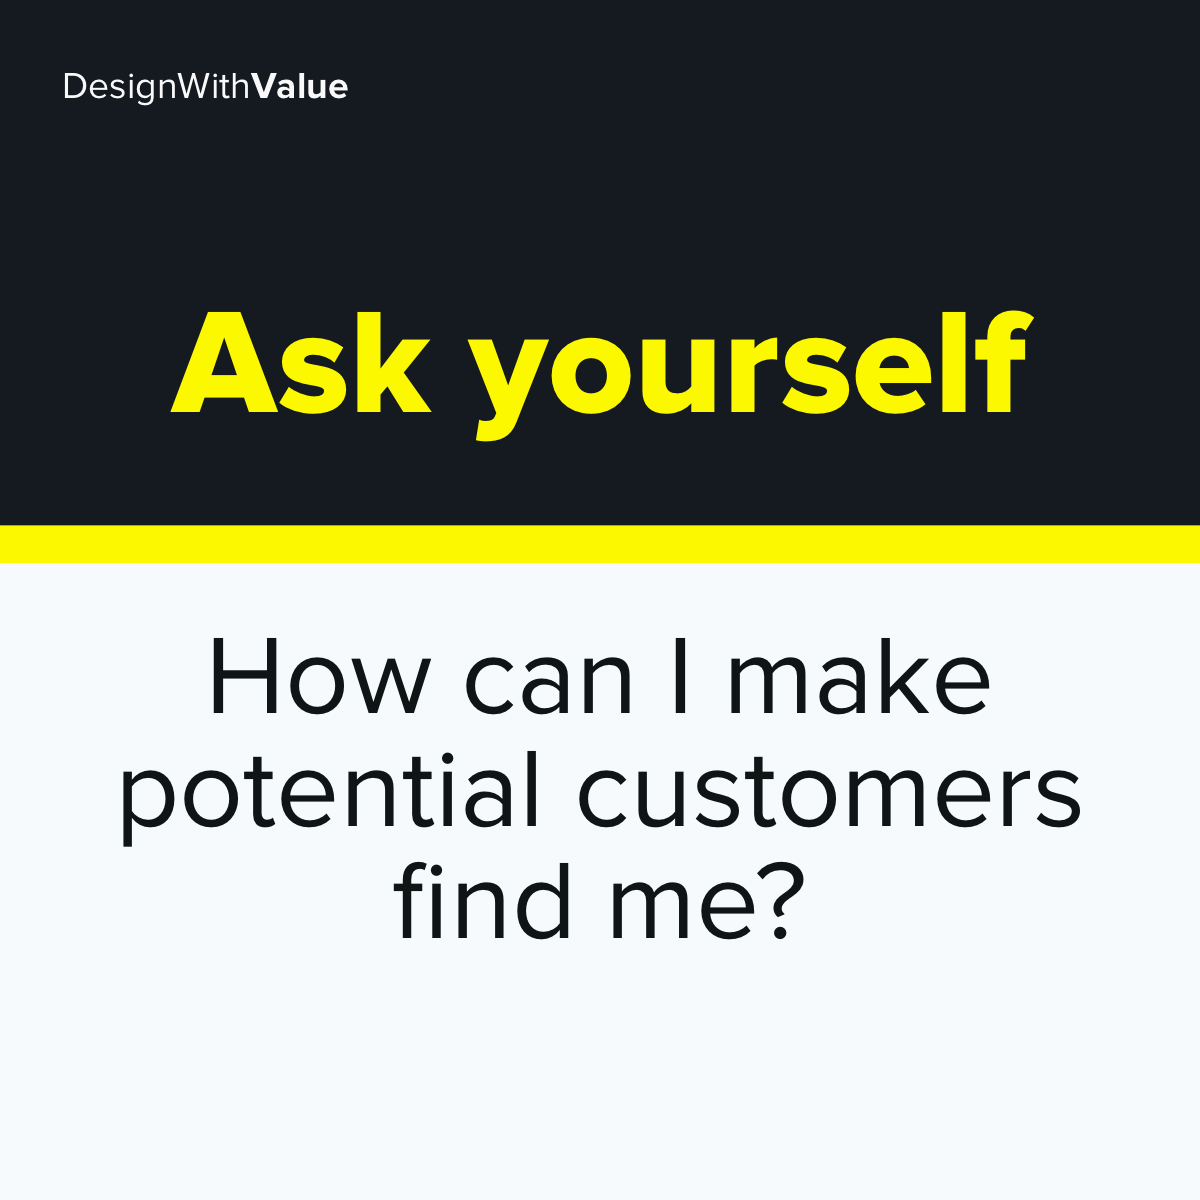 Ask yourself. How can I make potential customers find me?